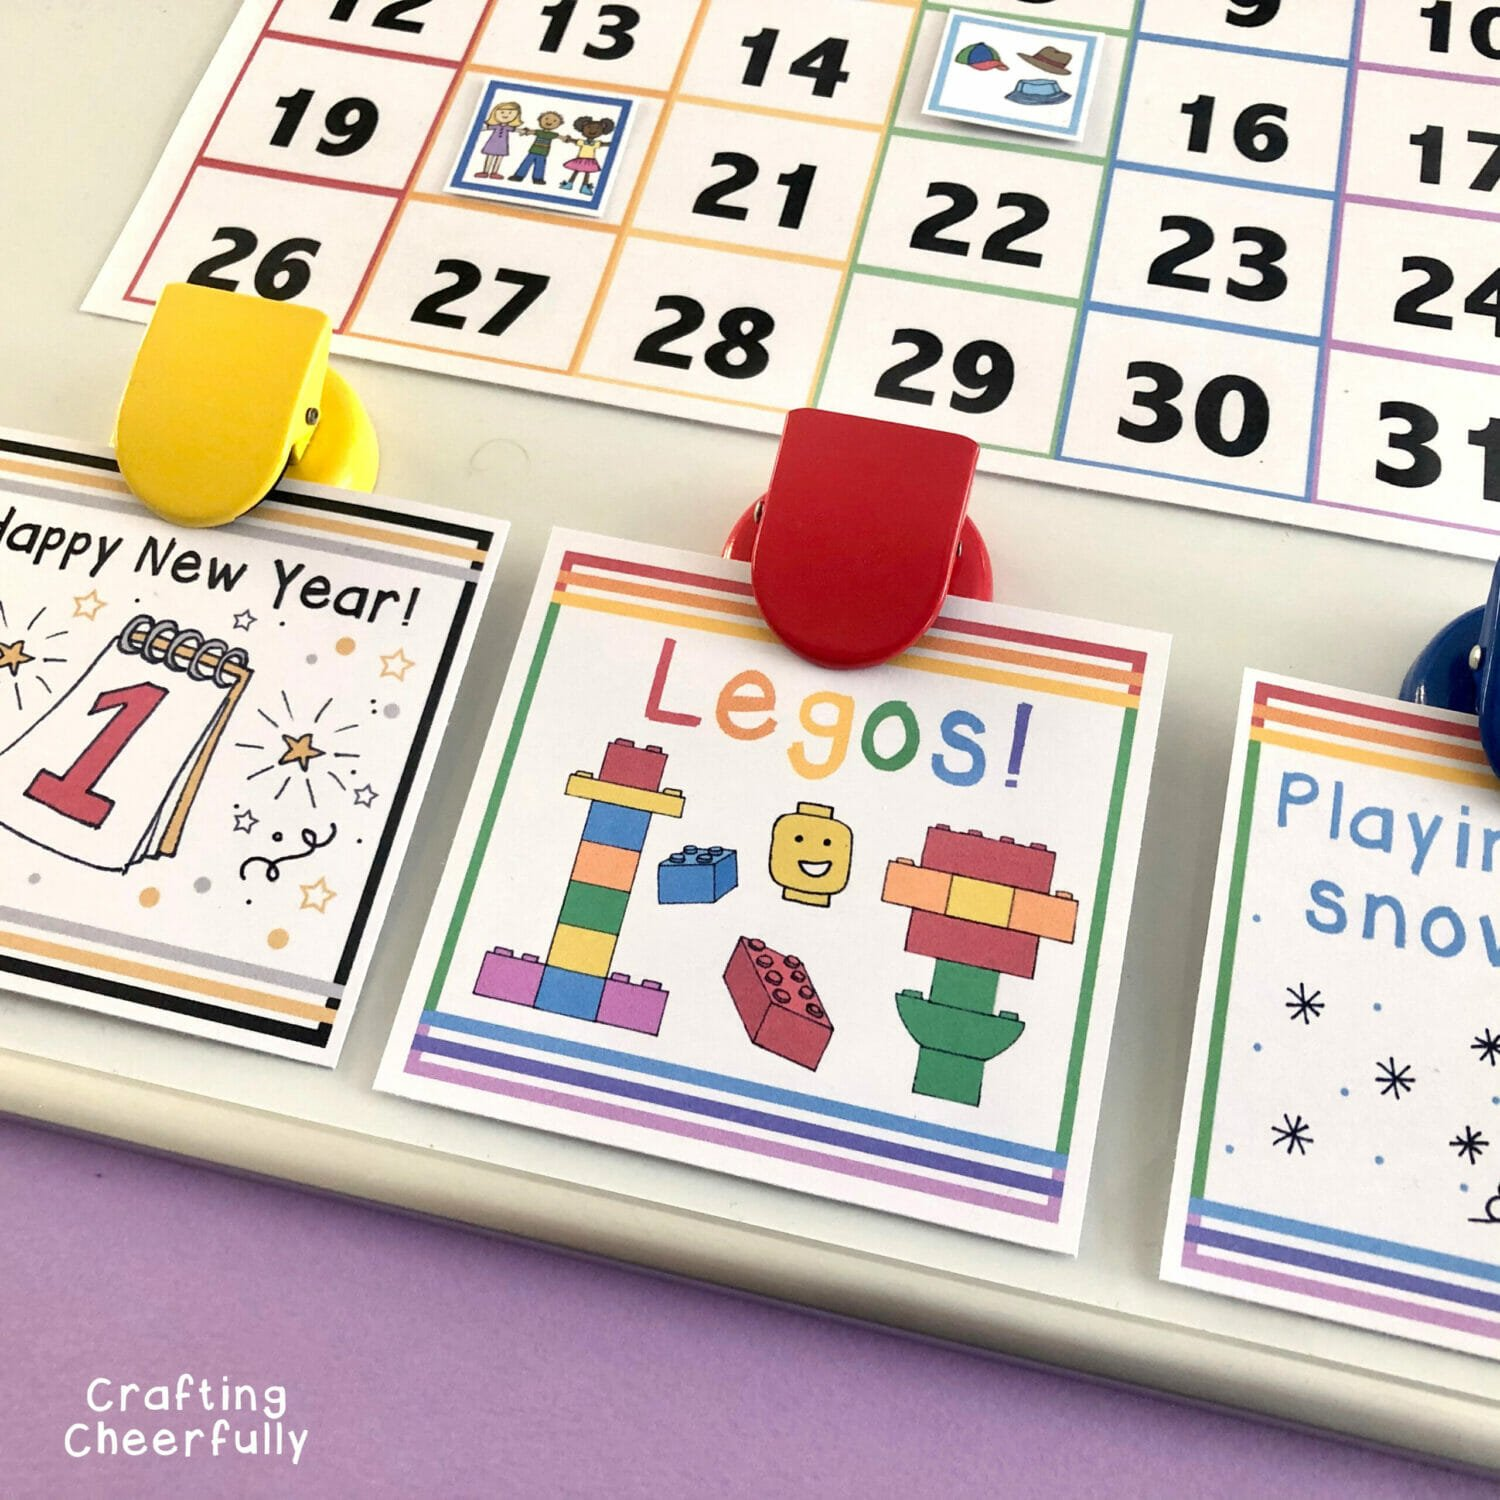 Activity cards clipped to kid's calendar.